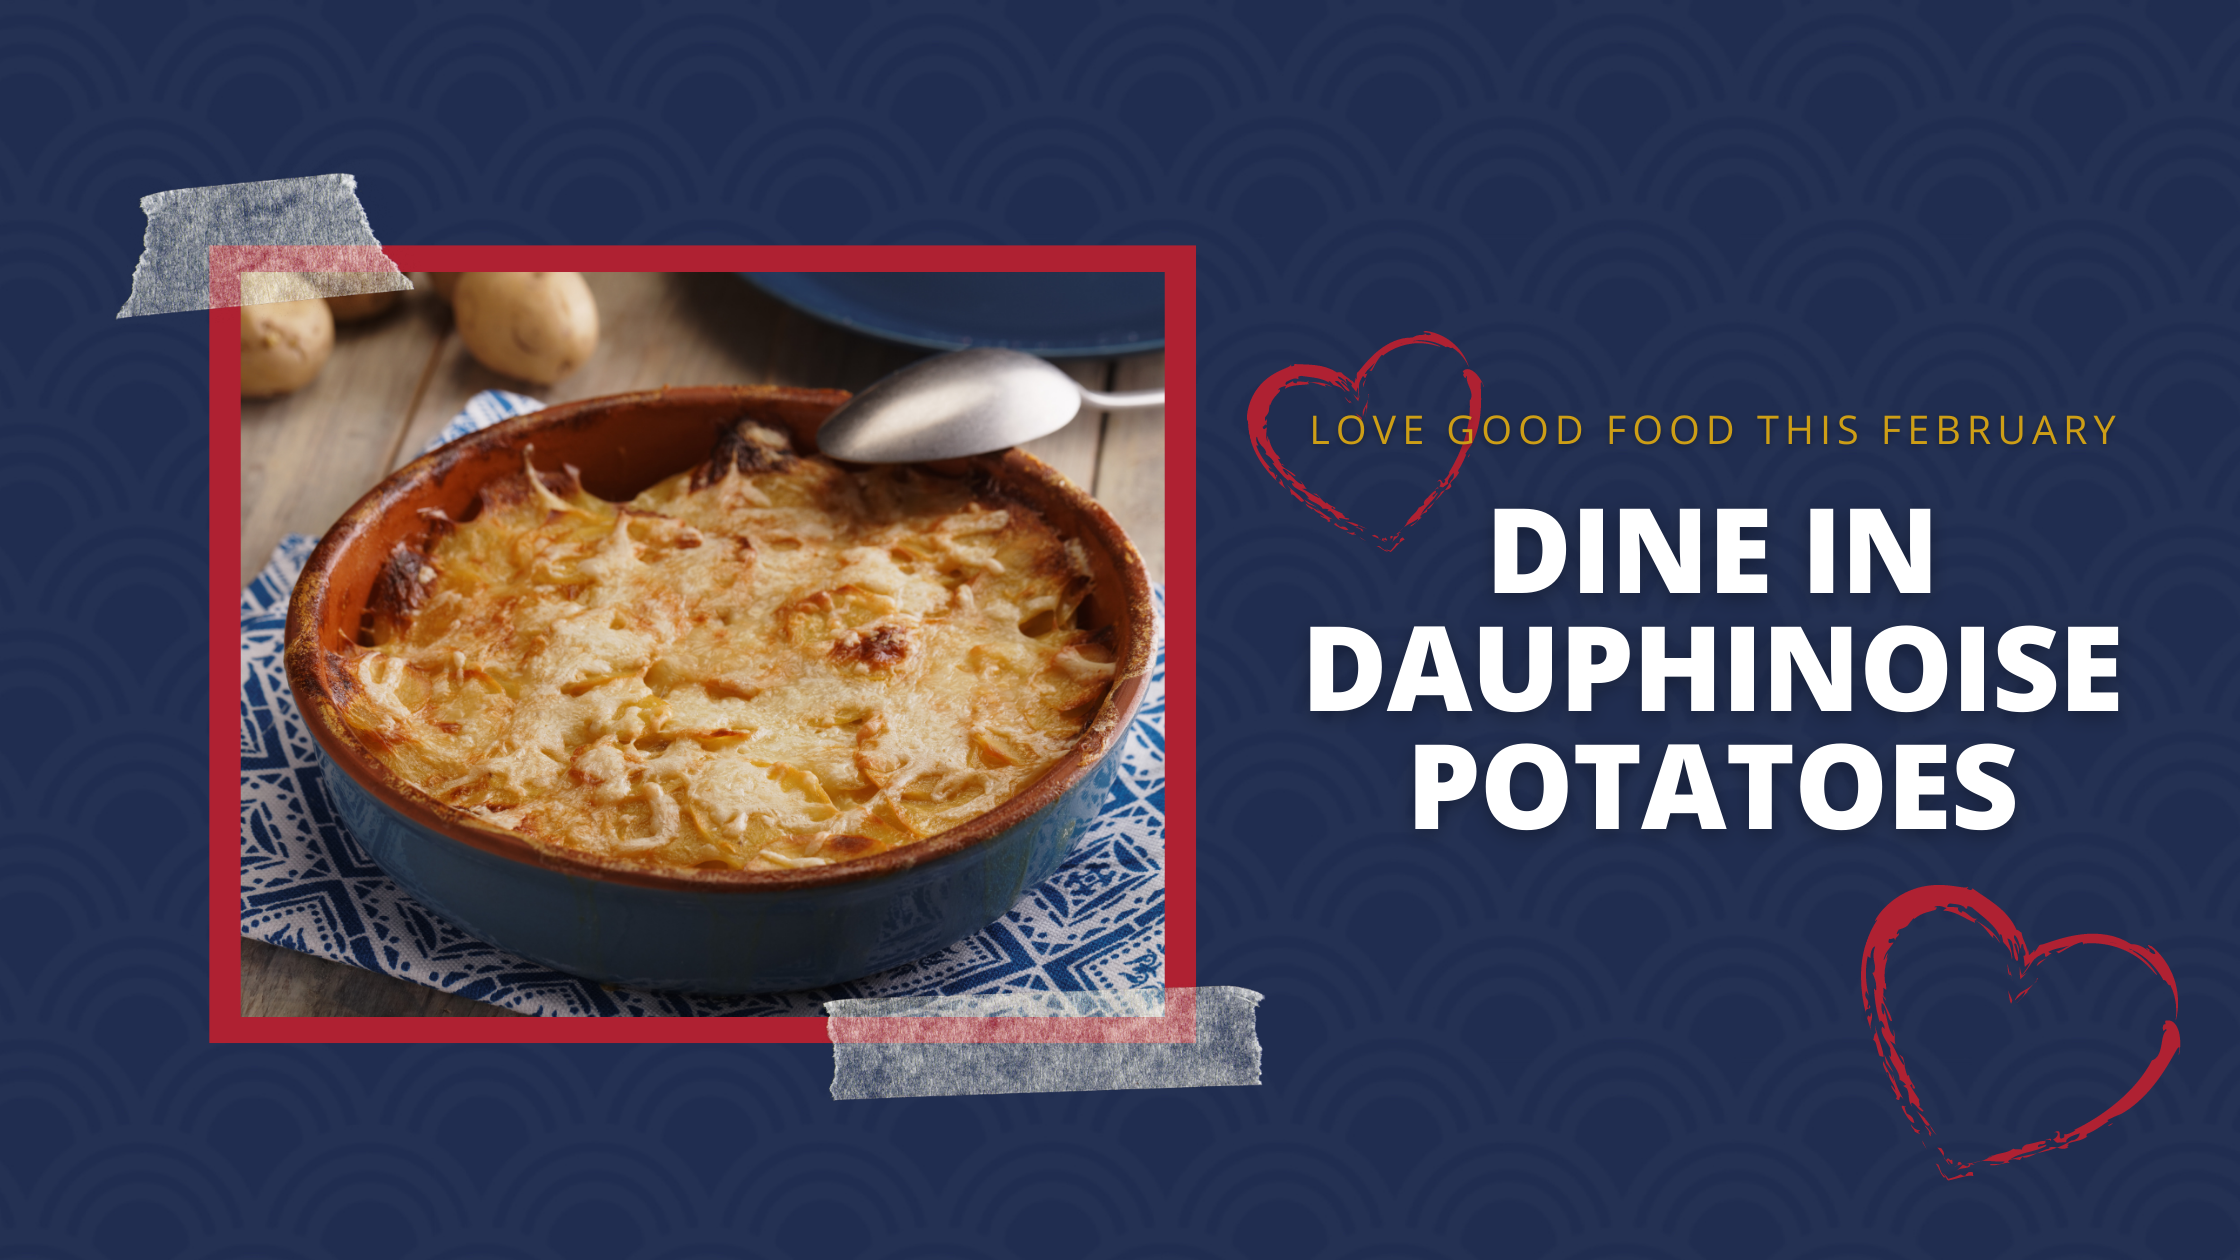 Dine in Dauphinoise Potatoes